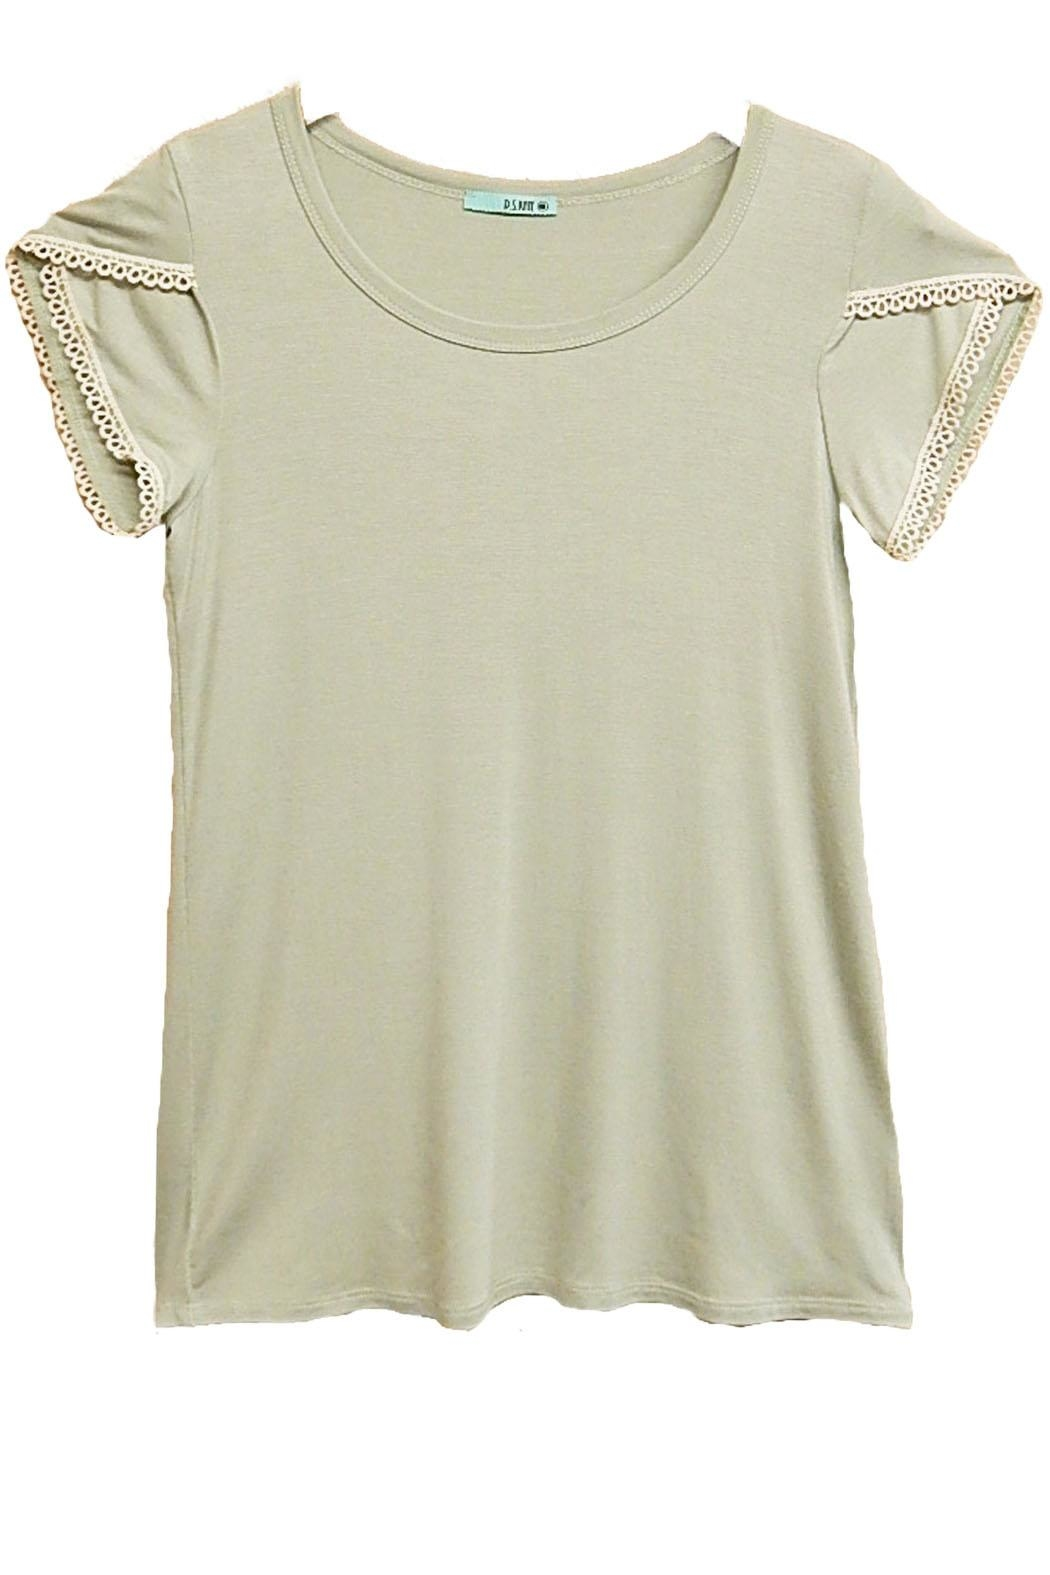 P.S Kate Green Beige-Lace Top - Main Image